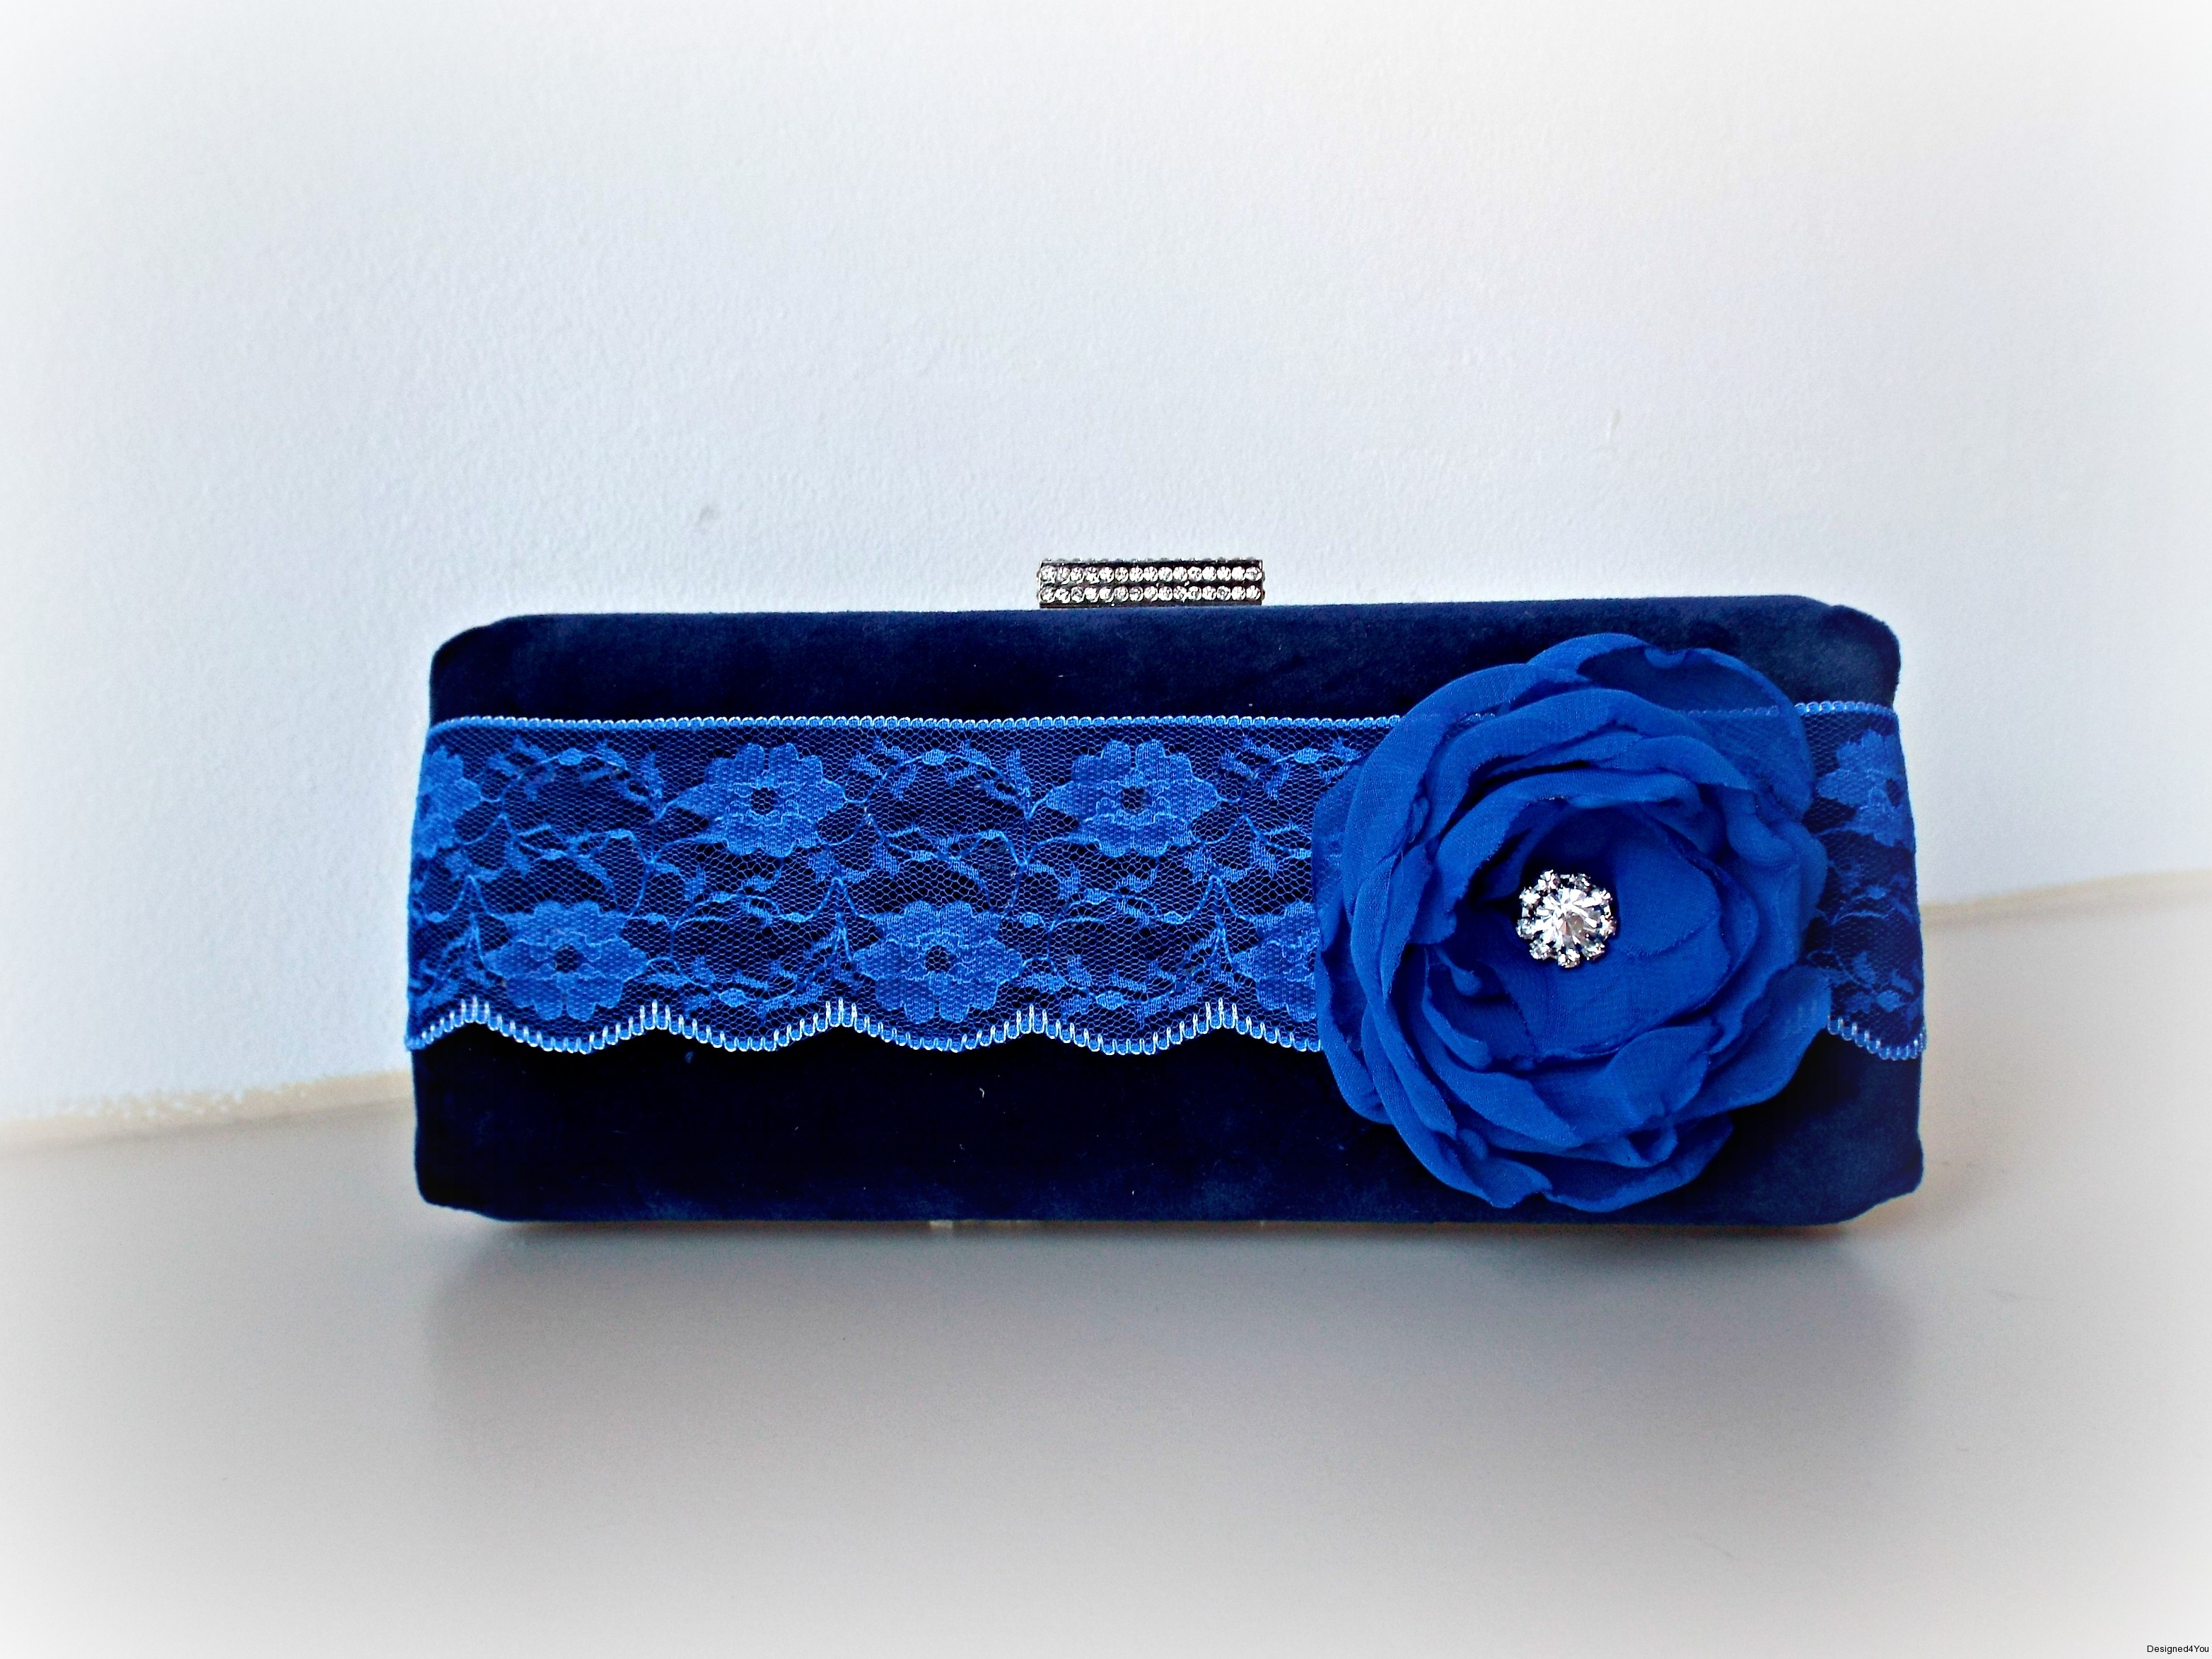 Sophia Handmade Clutch with blue lace & flower